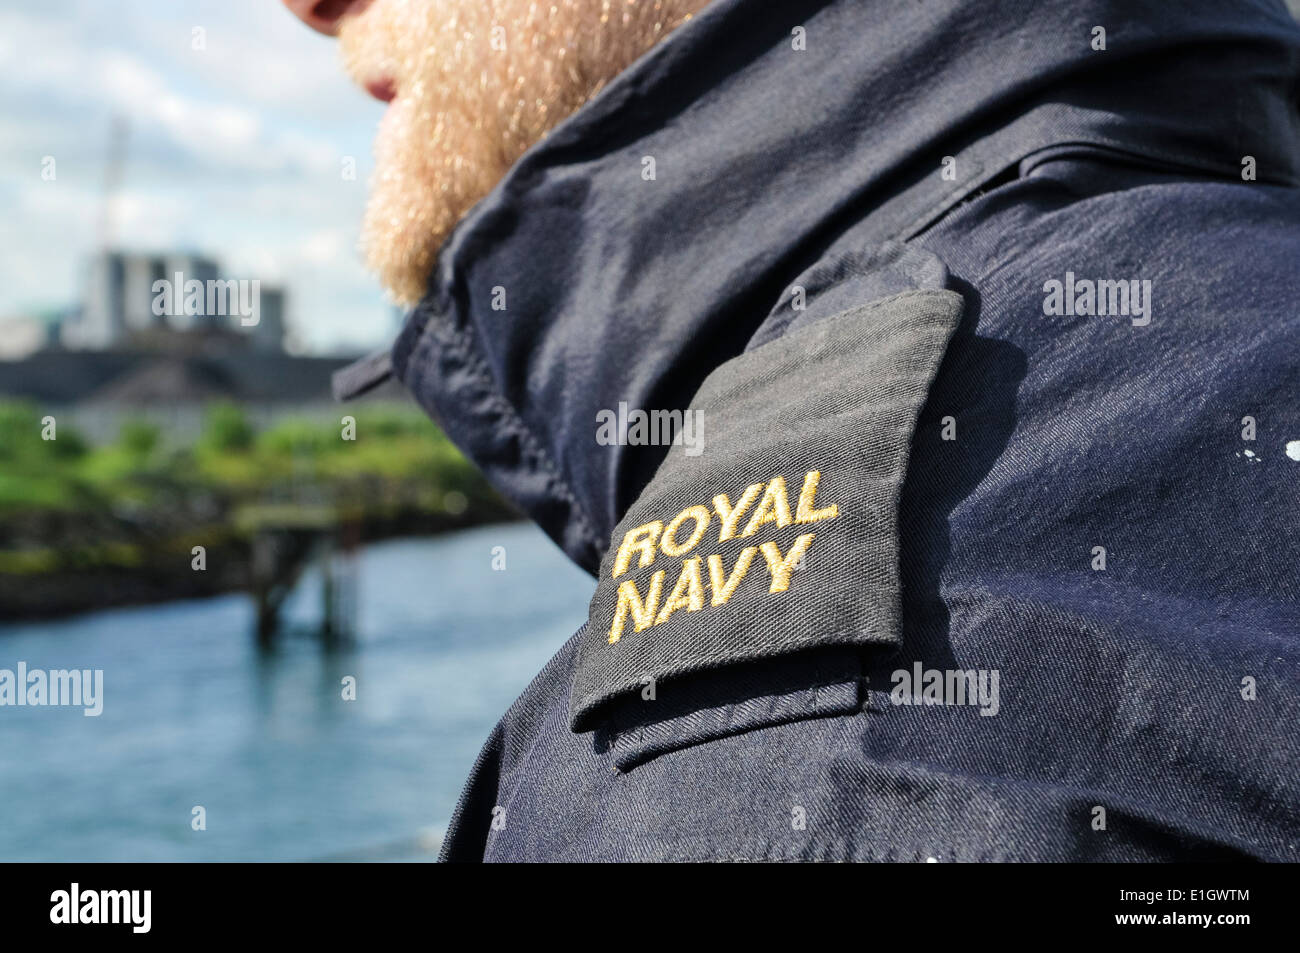 Epaulettes of a Royal Navy sailor - Stock Image